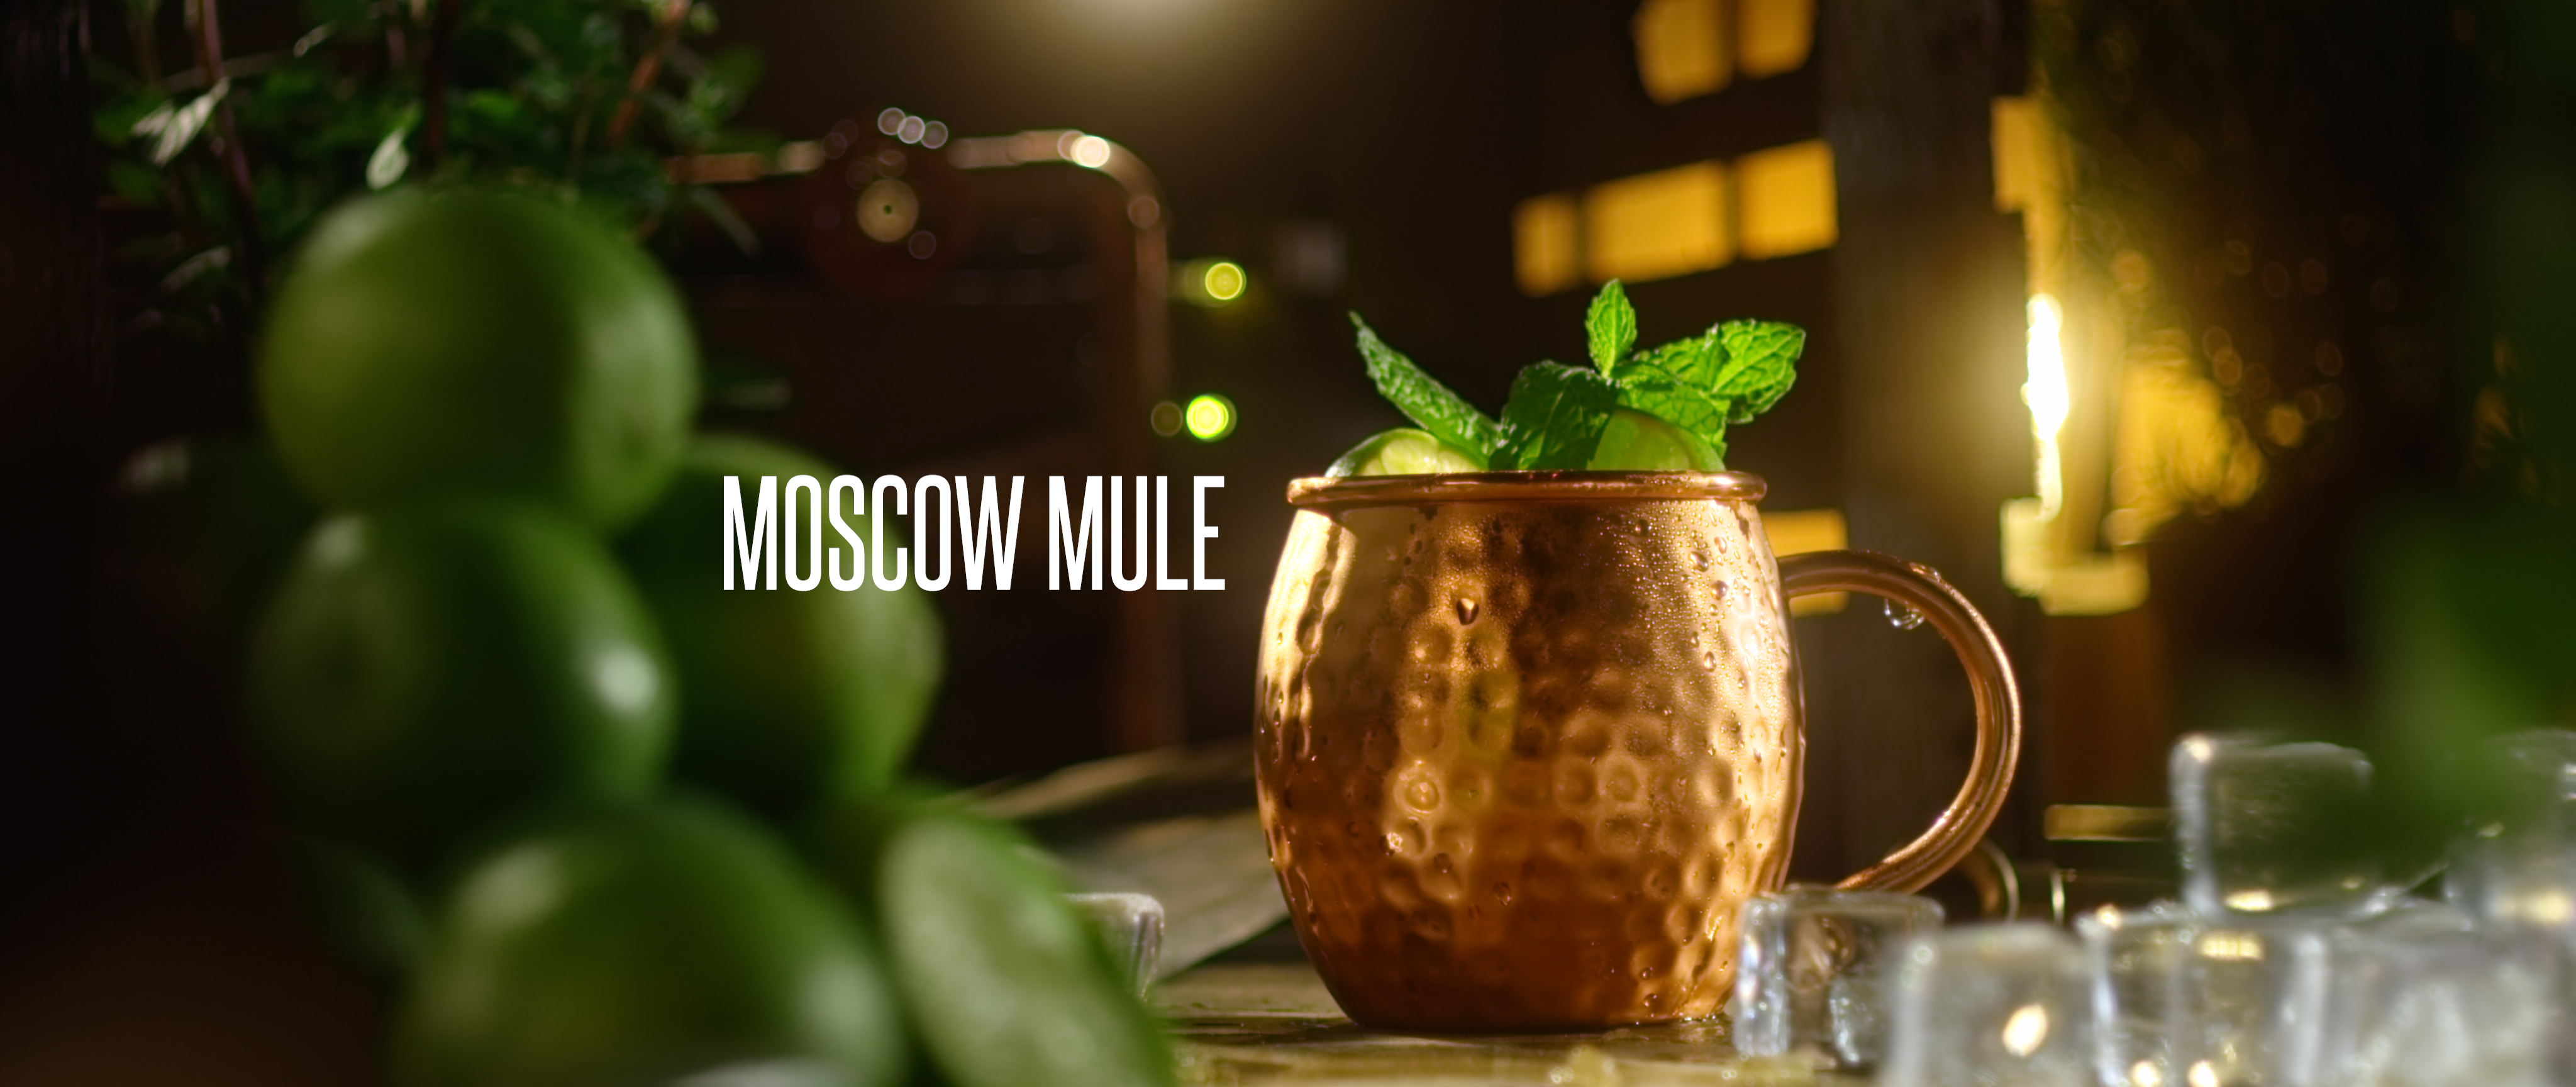 The Taste Of Moscow Mule